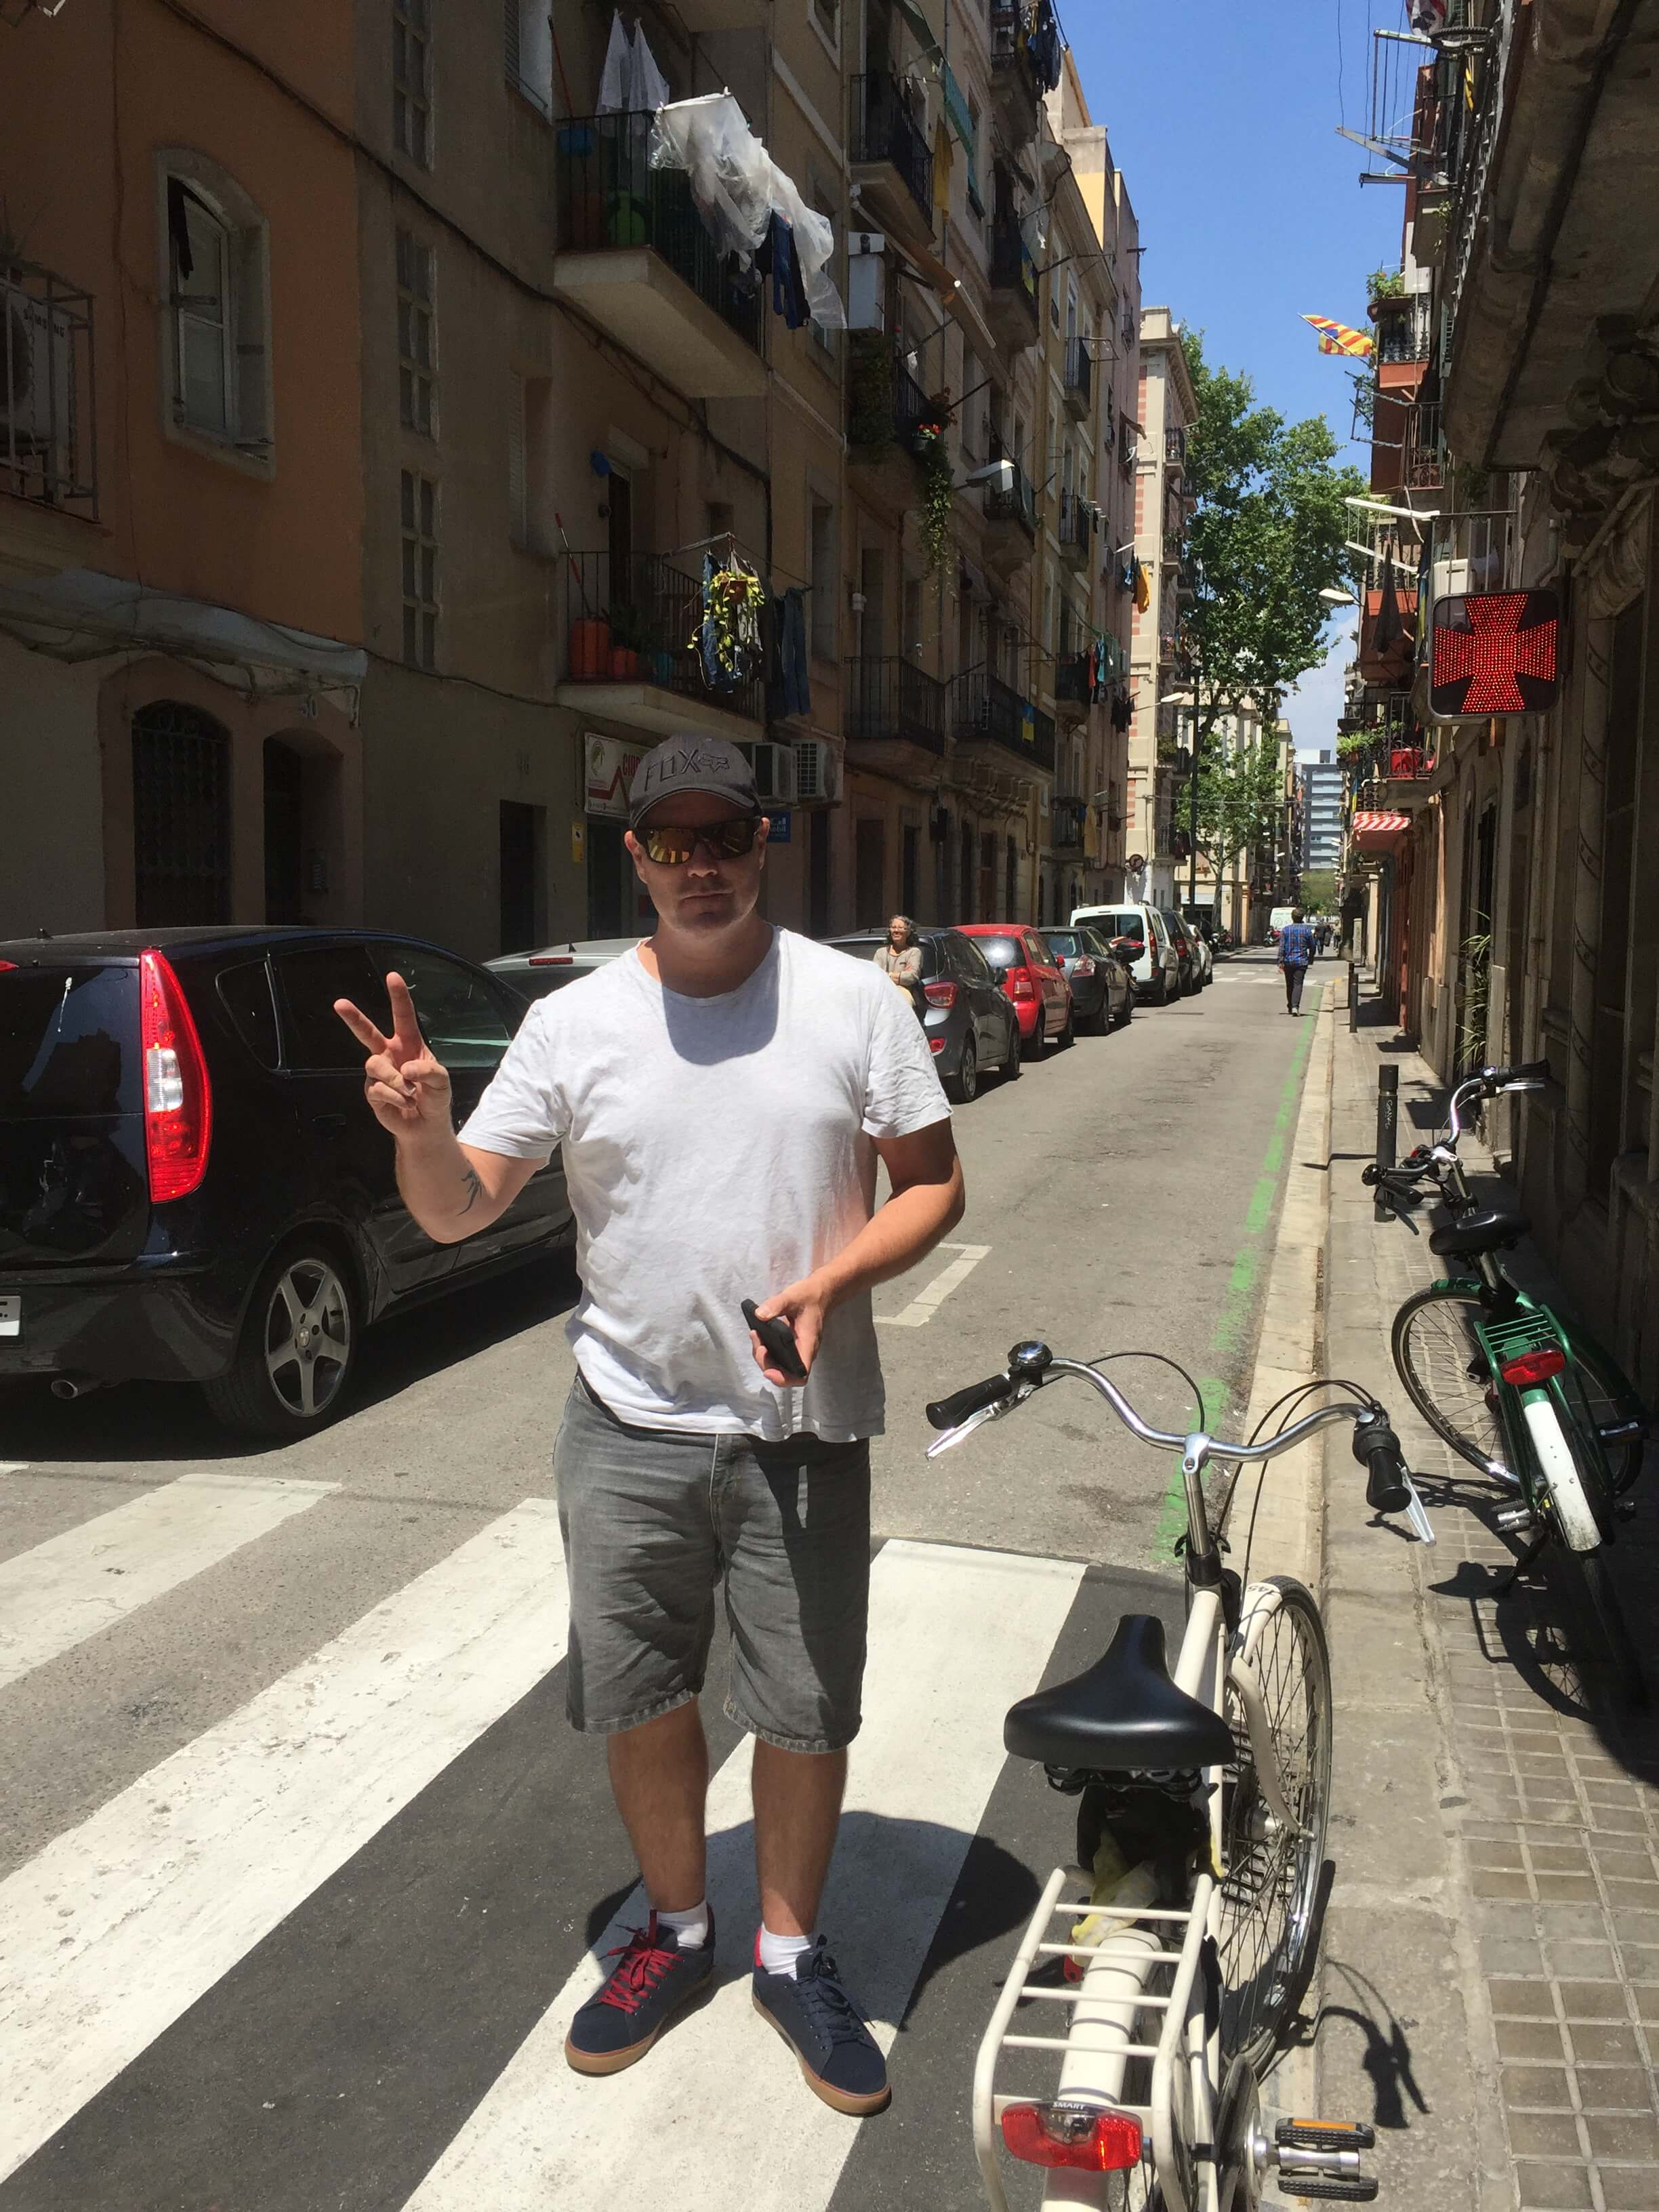 The first bike Damo rode in Spain was not quite as cool as the lasst bike he rode. Where's the basket